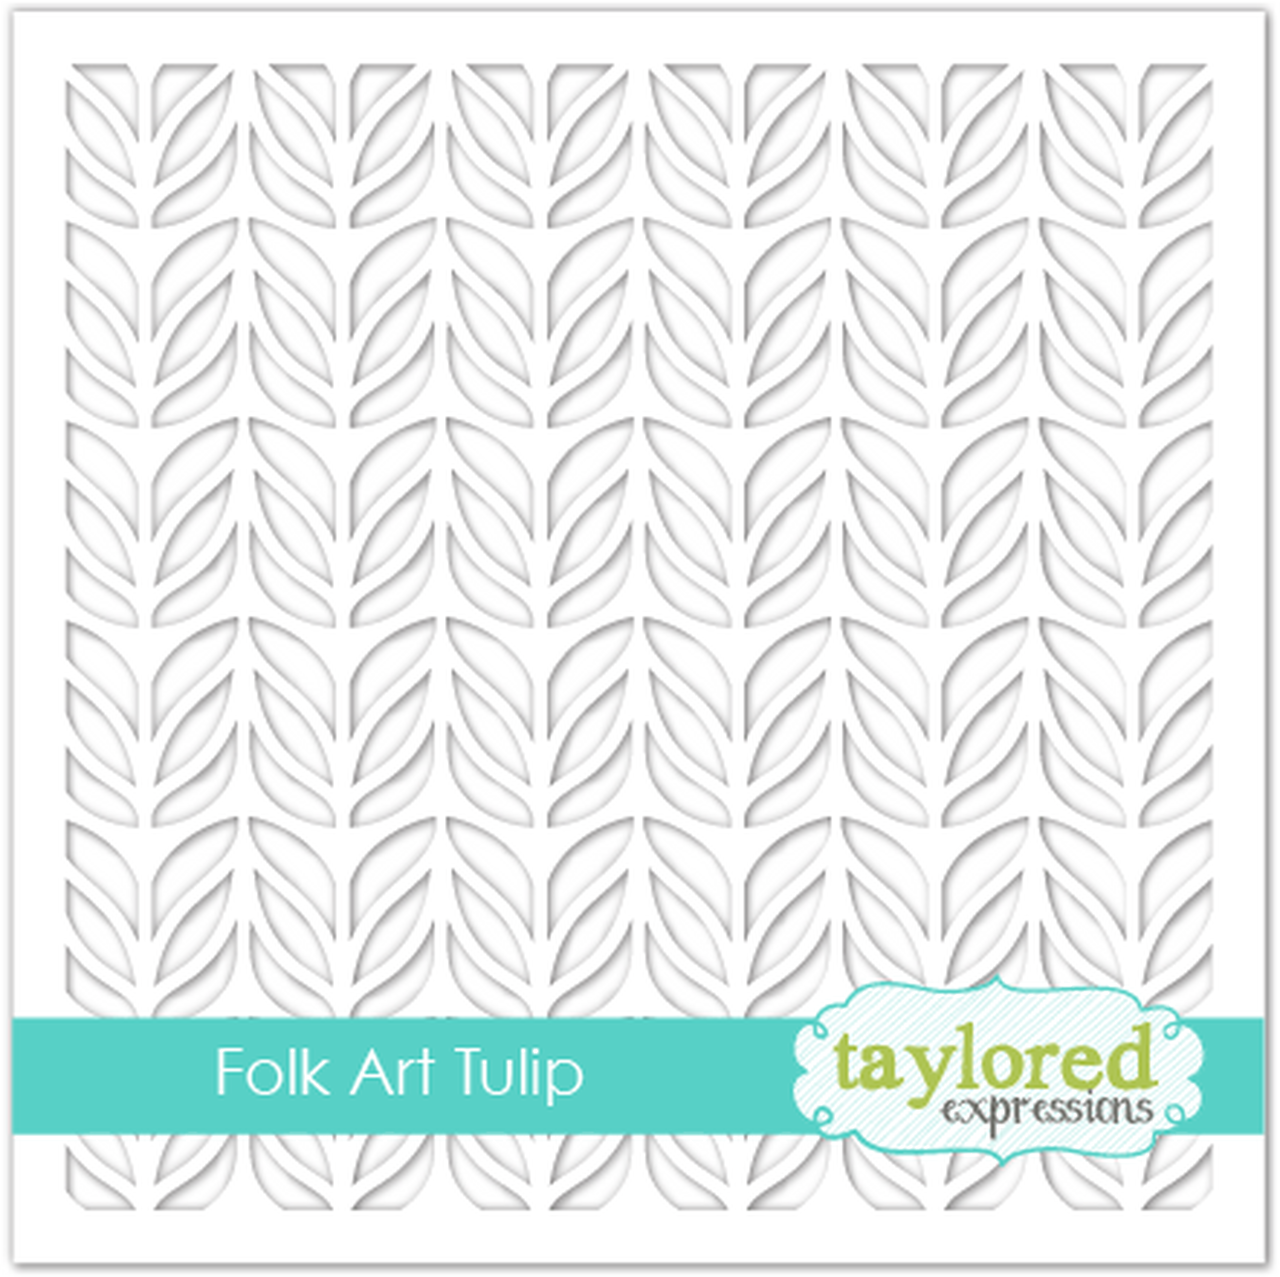 **NEW* - Taylored Expression - Folk Art Tulip Stencil